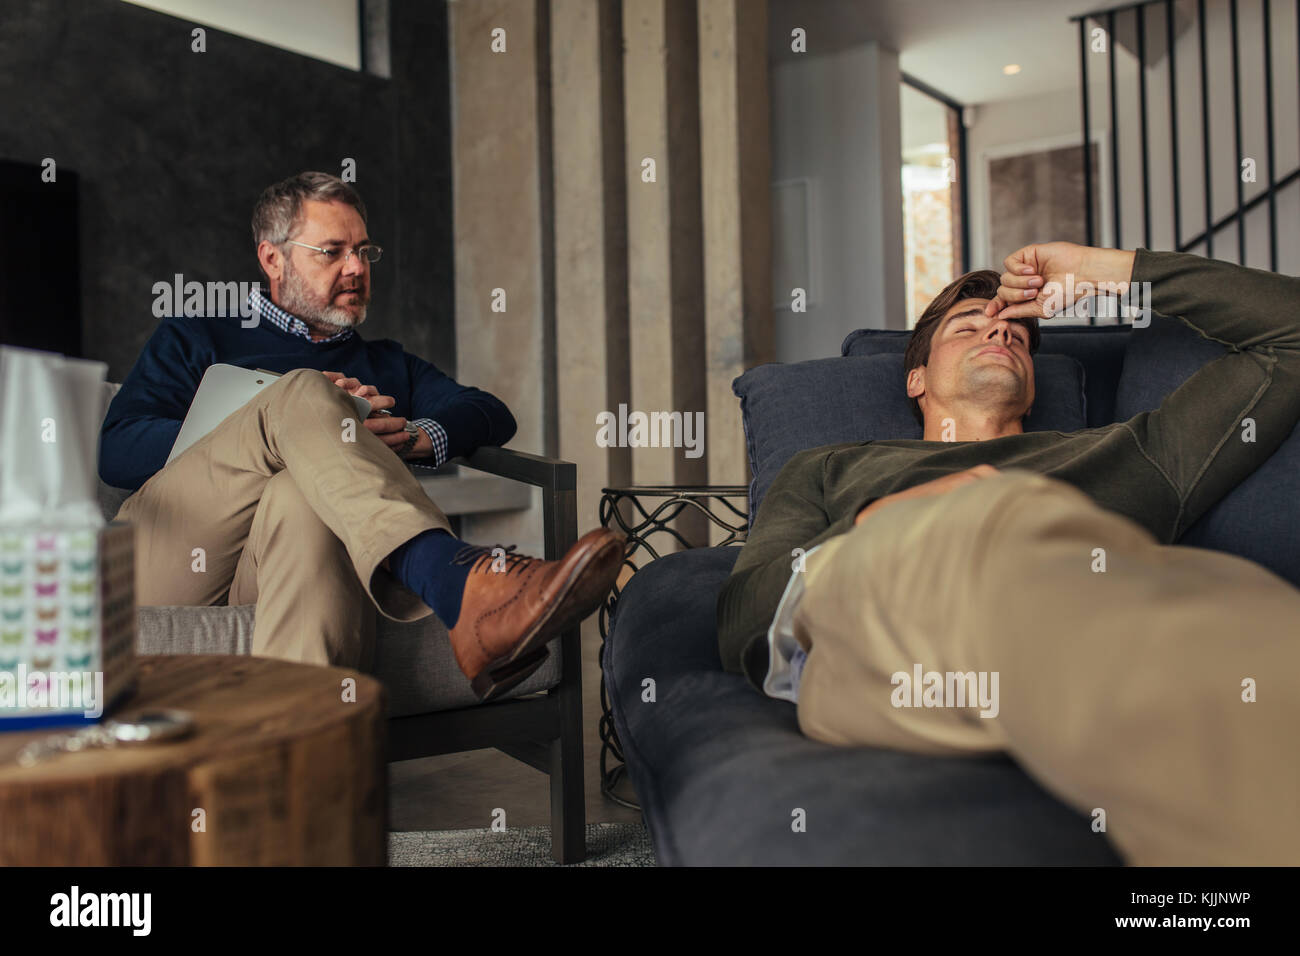 Stressed man listening psychologist's analysis. Male patient lying on sofa during psychotherapy session. Stock Photo